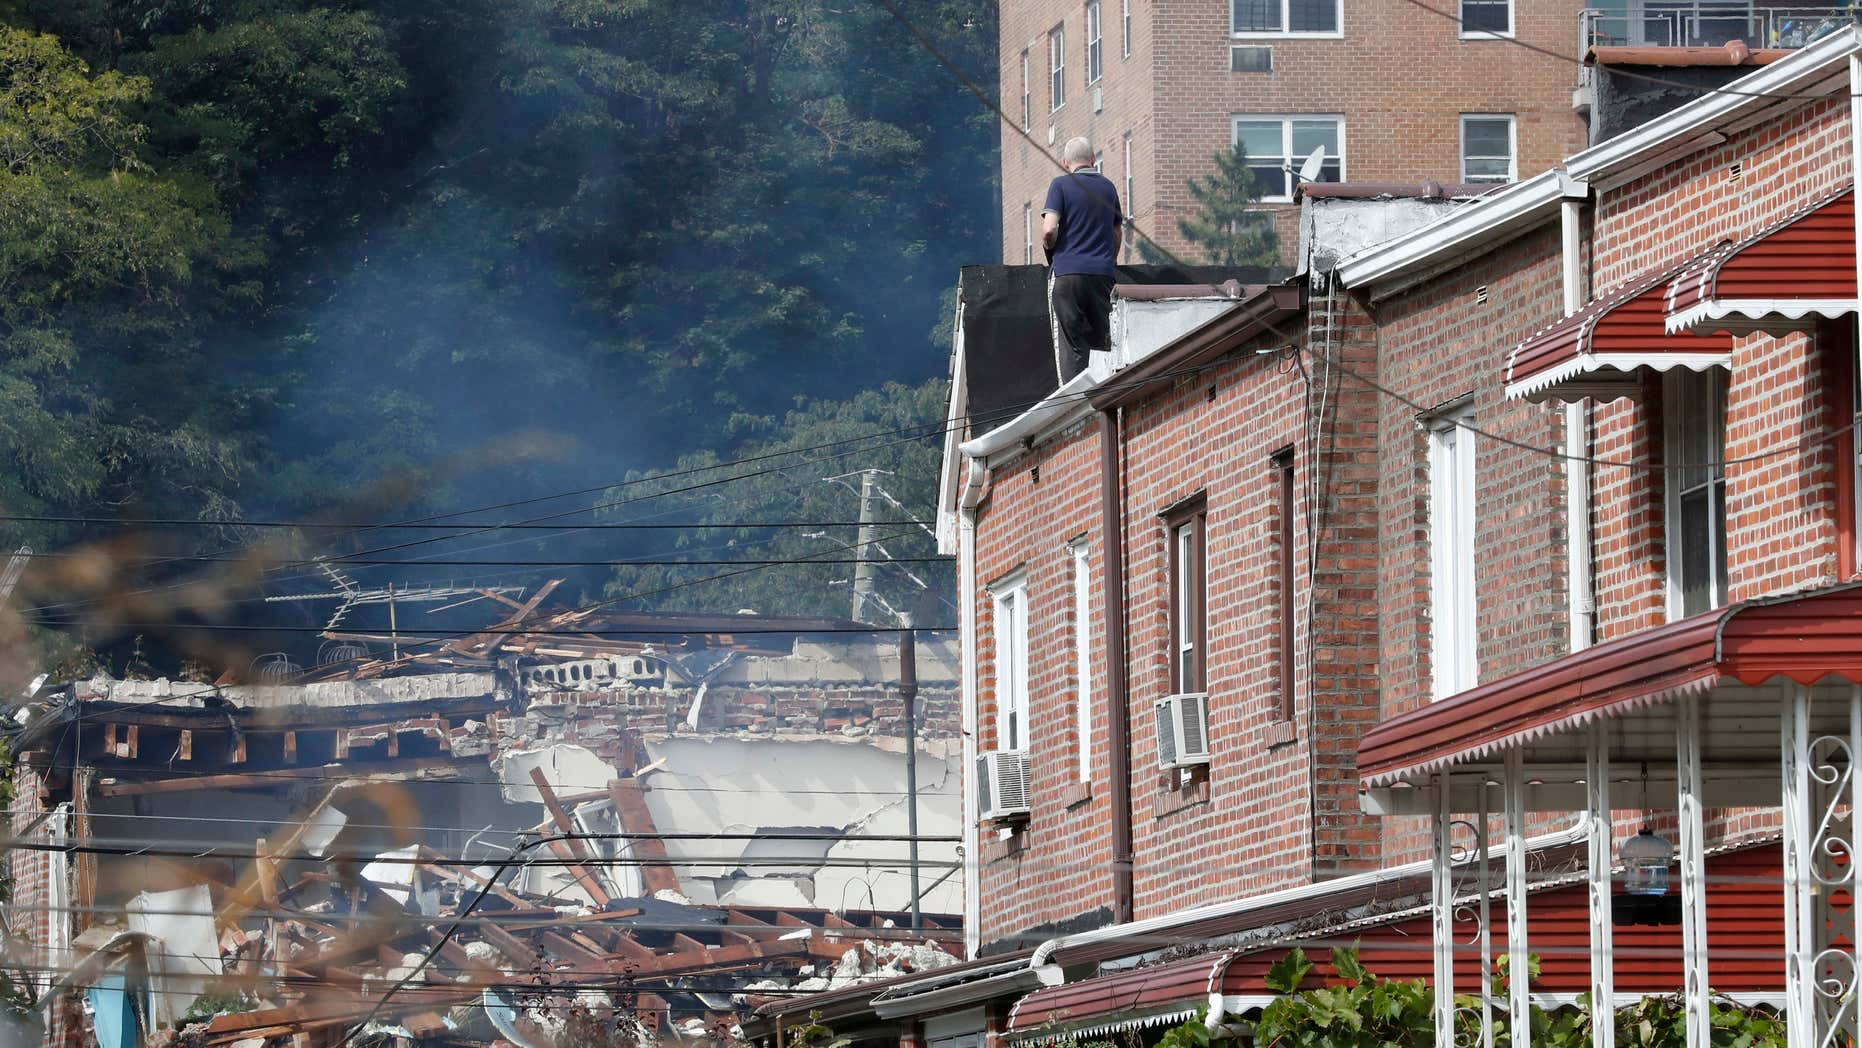 A man watches emergency service personnel work at the scene of a house explosion from a roof, Tuesday, Sept. 27, 2016, in the Bronx borough of New York.